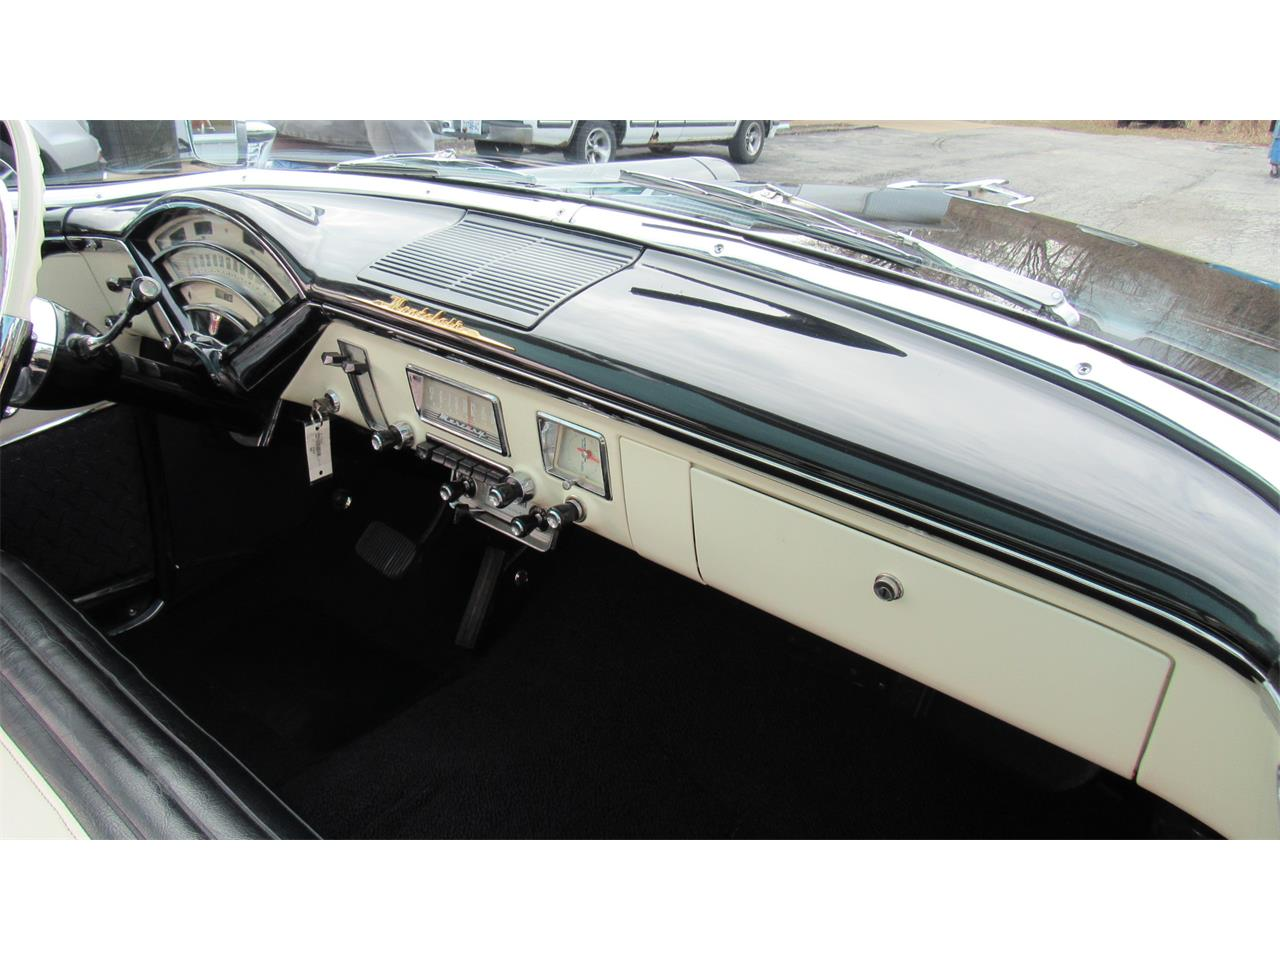 1955 Mercury Montclair (CC-1321818) for sale in WASHINGTON, Missouri